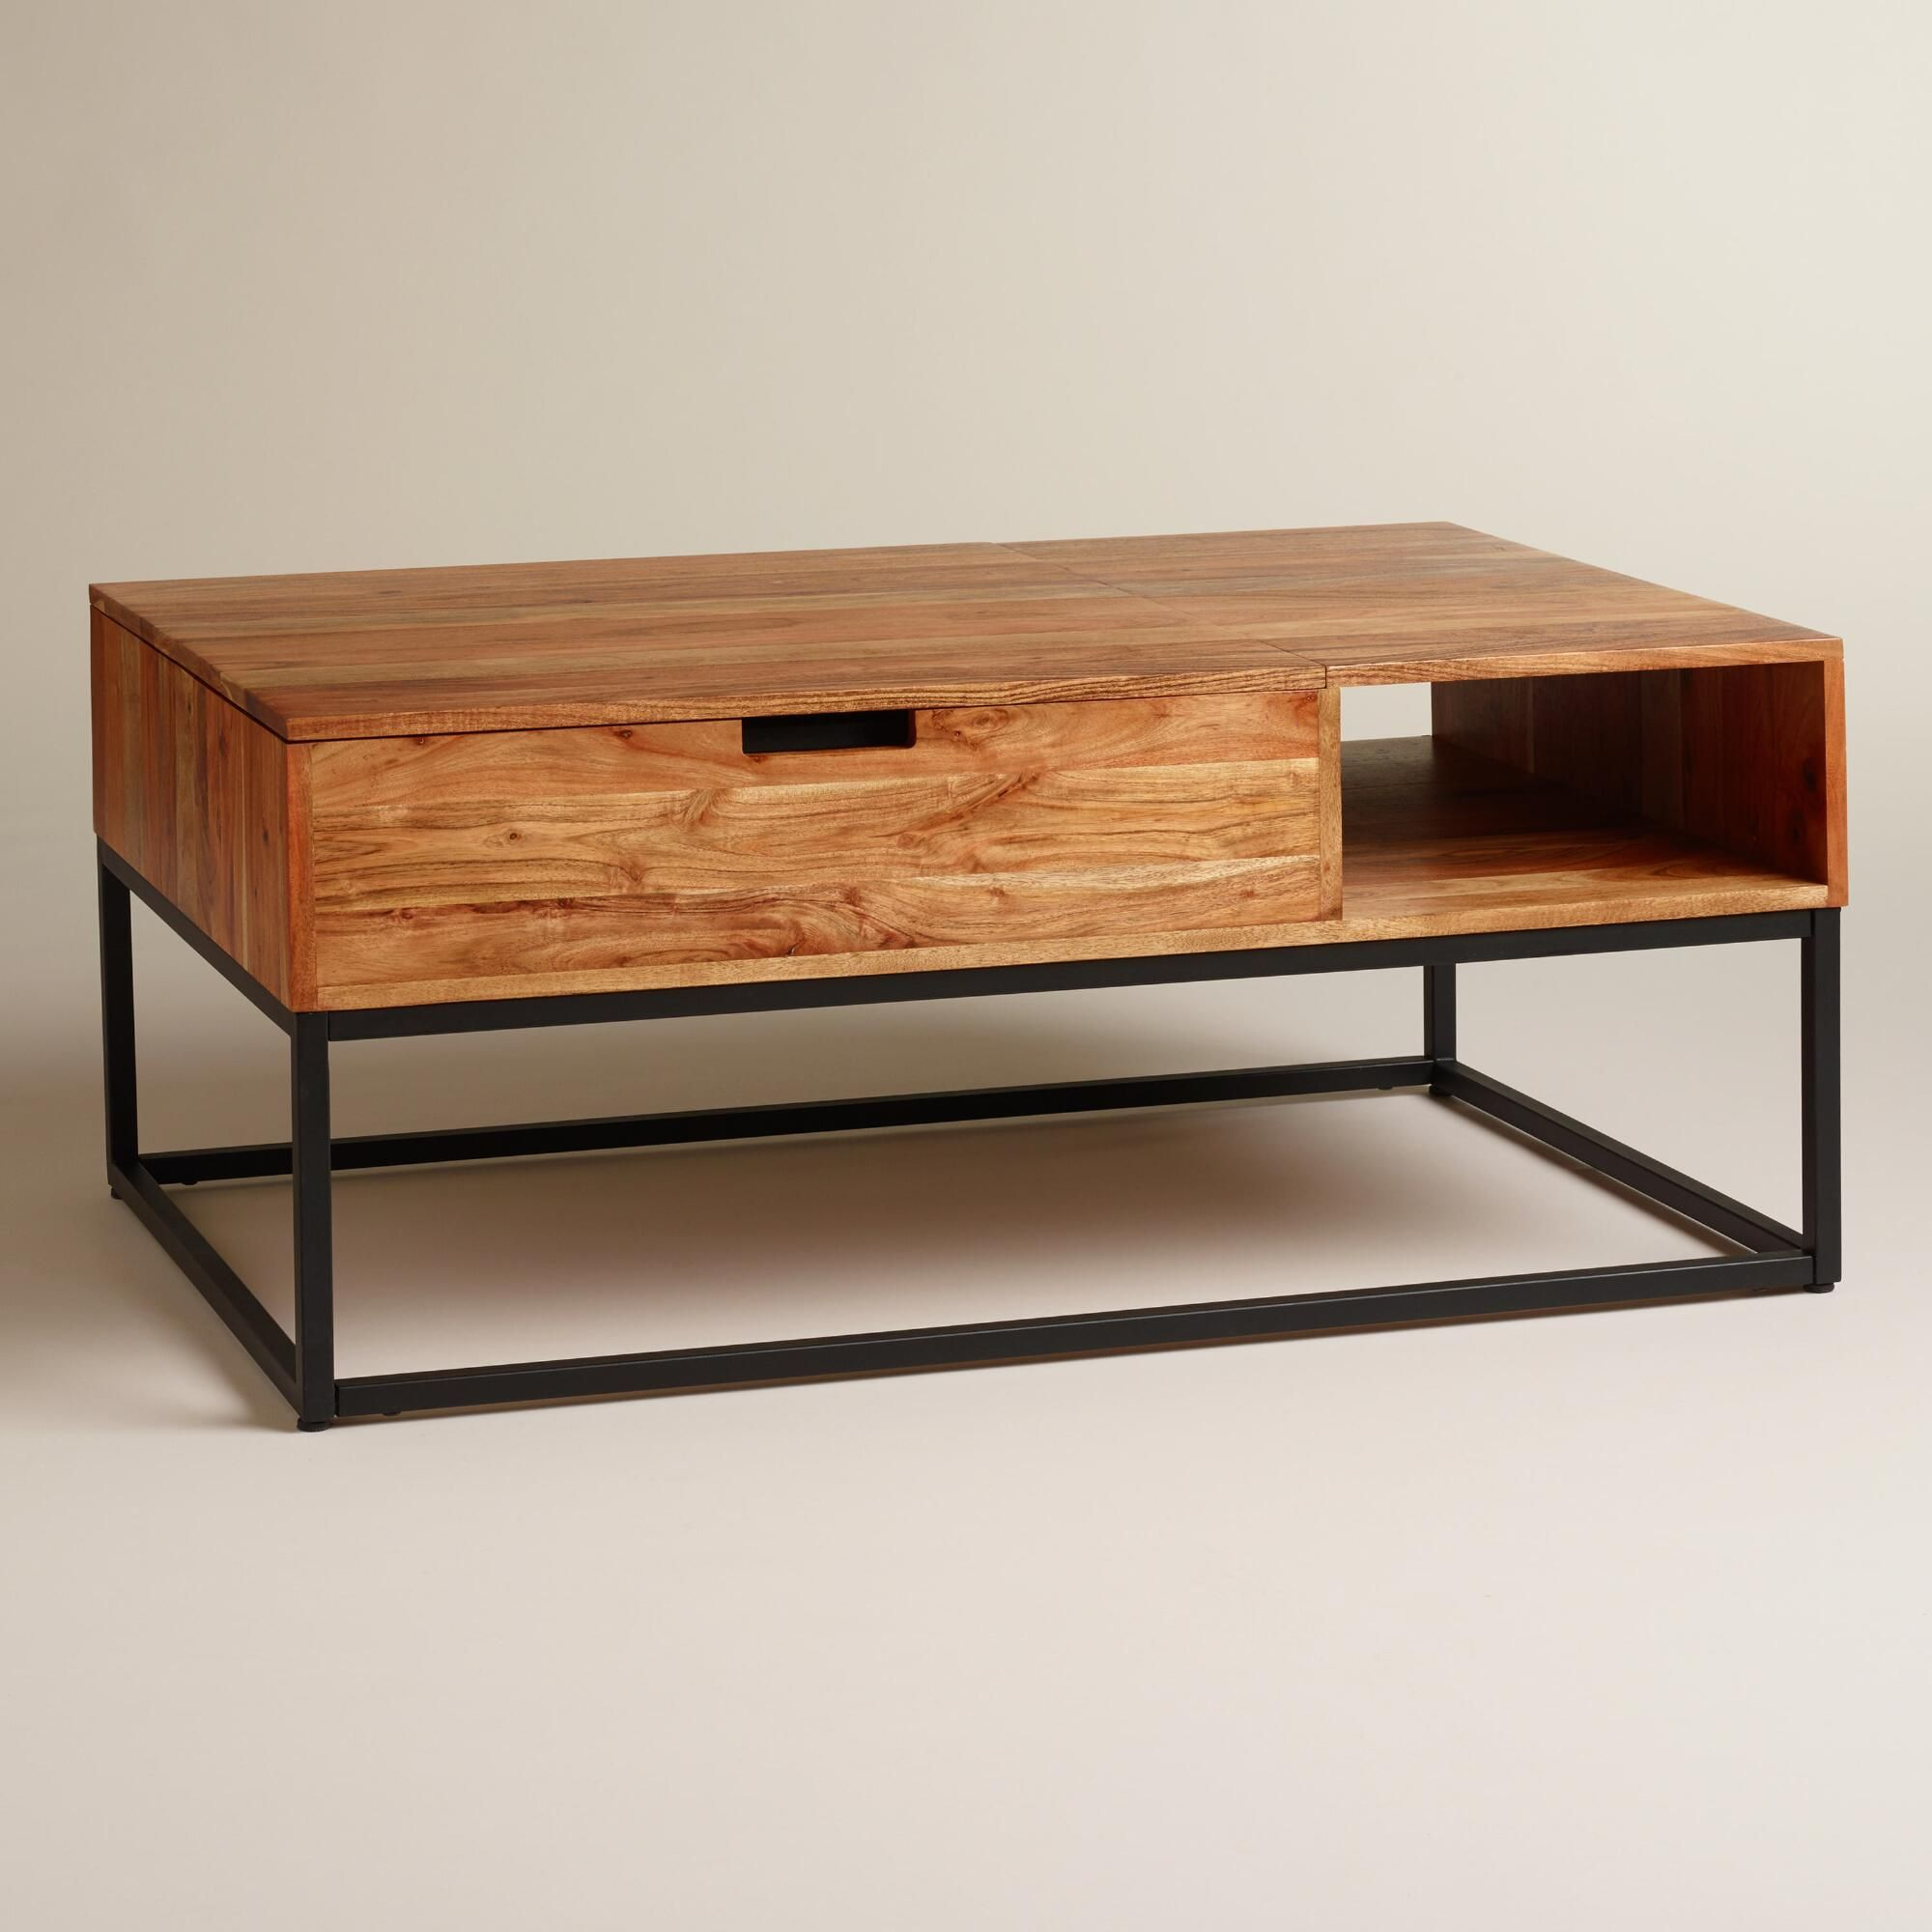 On Sale For 249  Wood Silas Storage Coffee Table